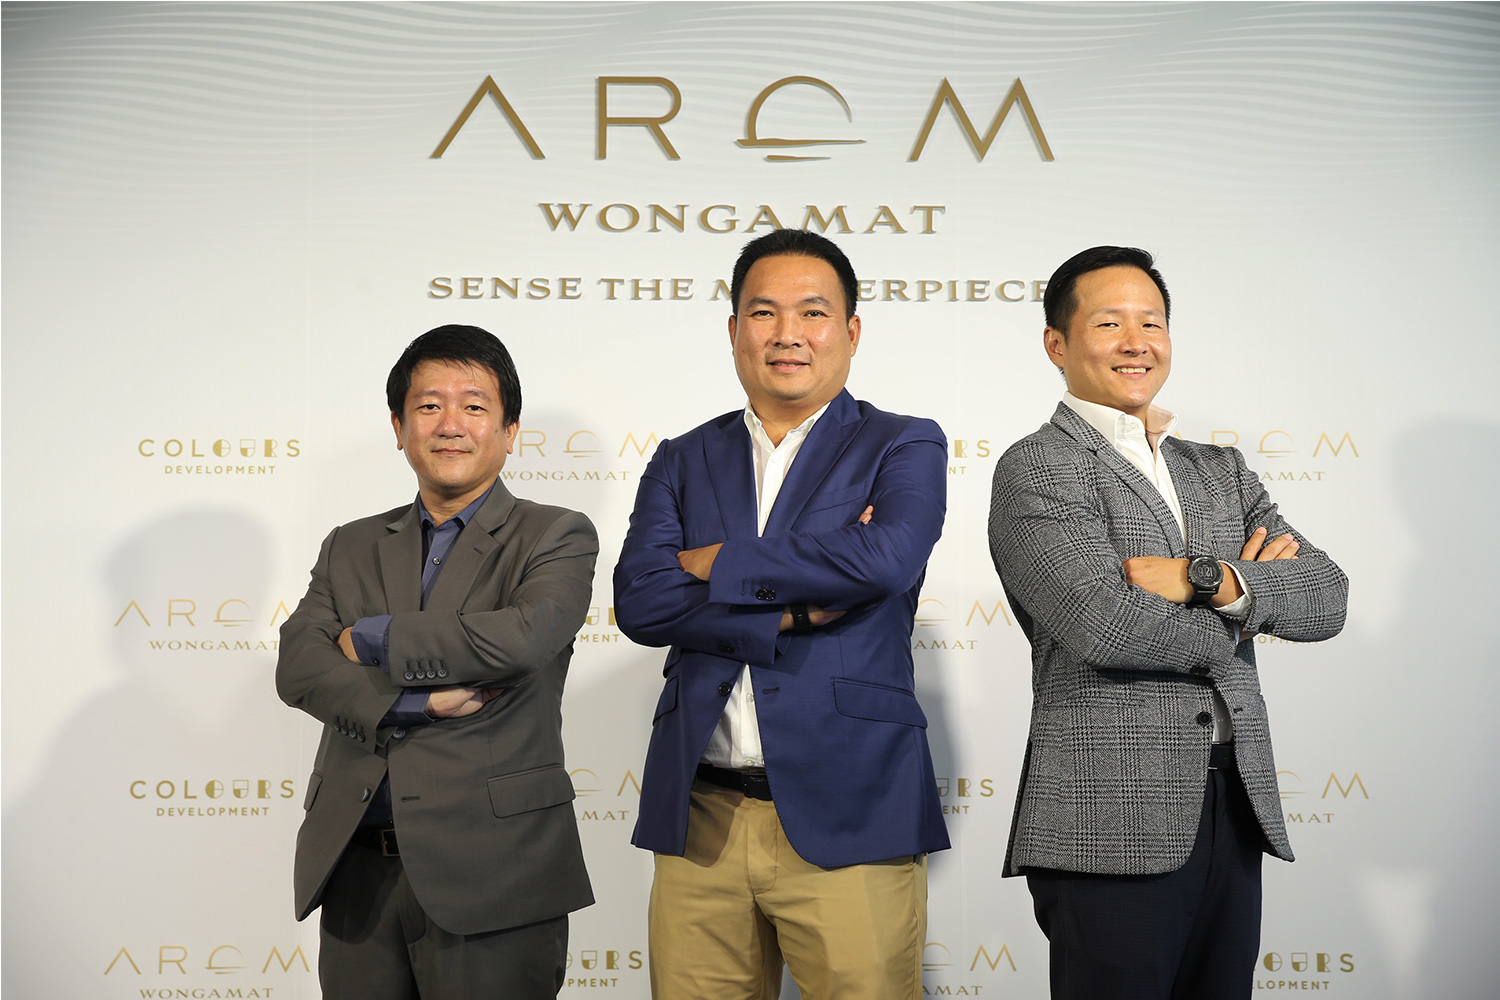 """The three CEOs & Founders of Colours Development Company Limited - Chalermphon Khoncham (Middle), Park Thanaakkarachol (Left), and Sompop Vanichsenee (Right), join together to launch """"AROM WONGAMAT"""", the ultimate super luxurious condominium located in the last prime beachfront location available at Wongamat Beach, Pattaya"""